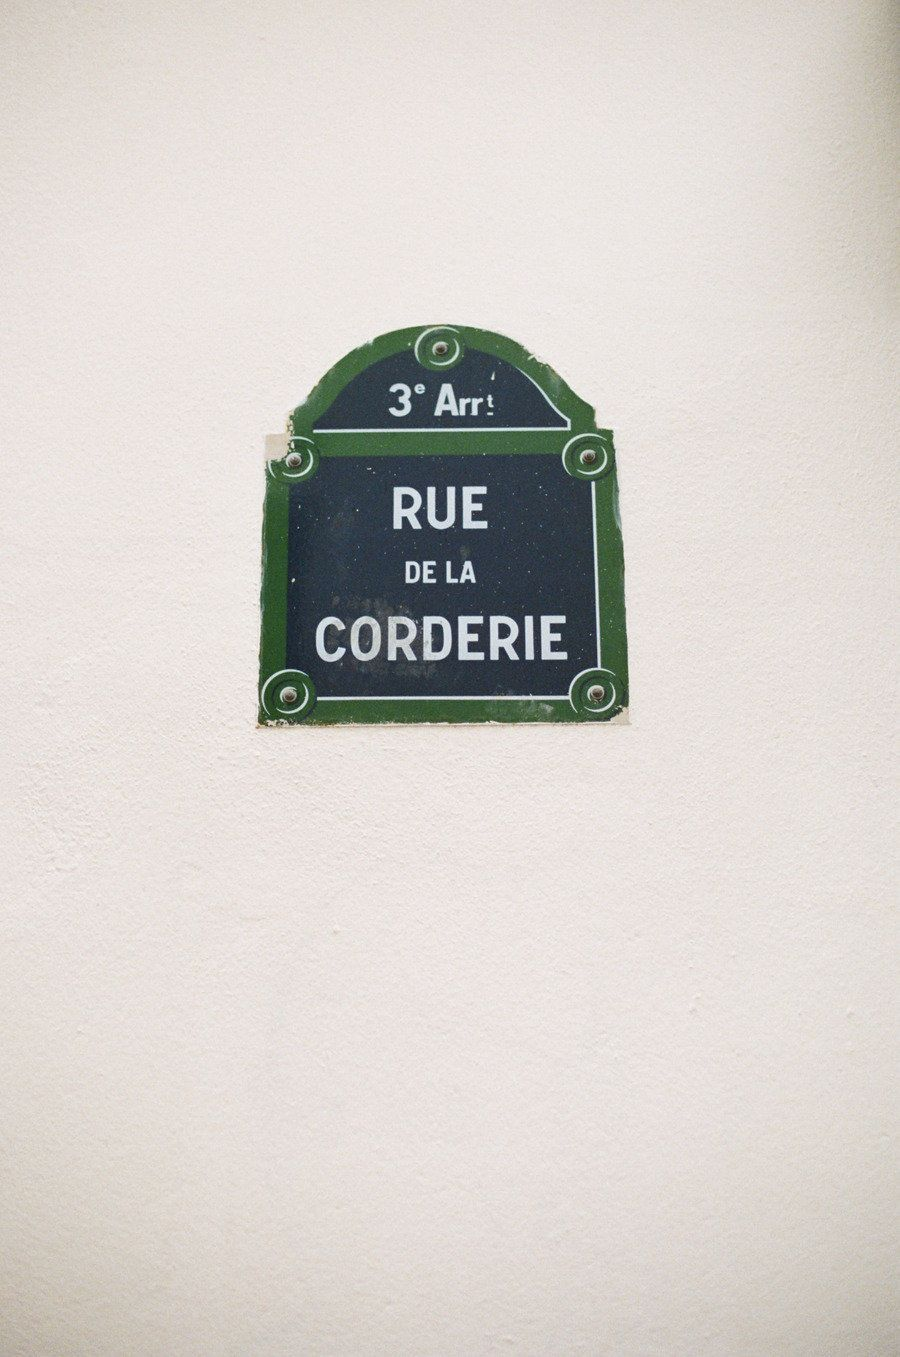 Love the French language